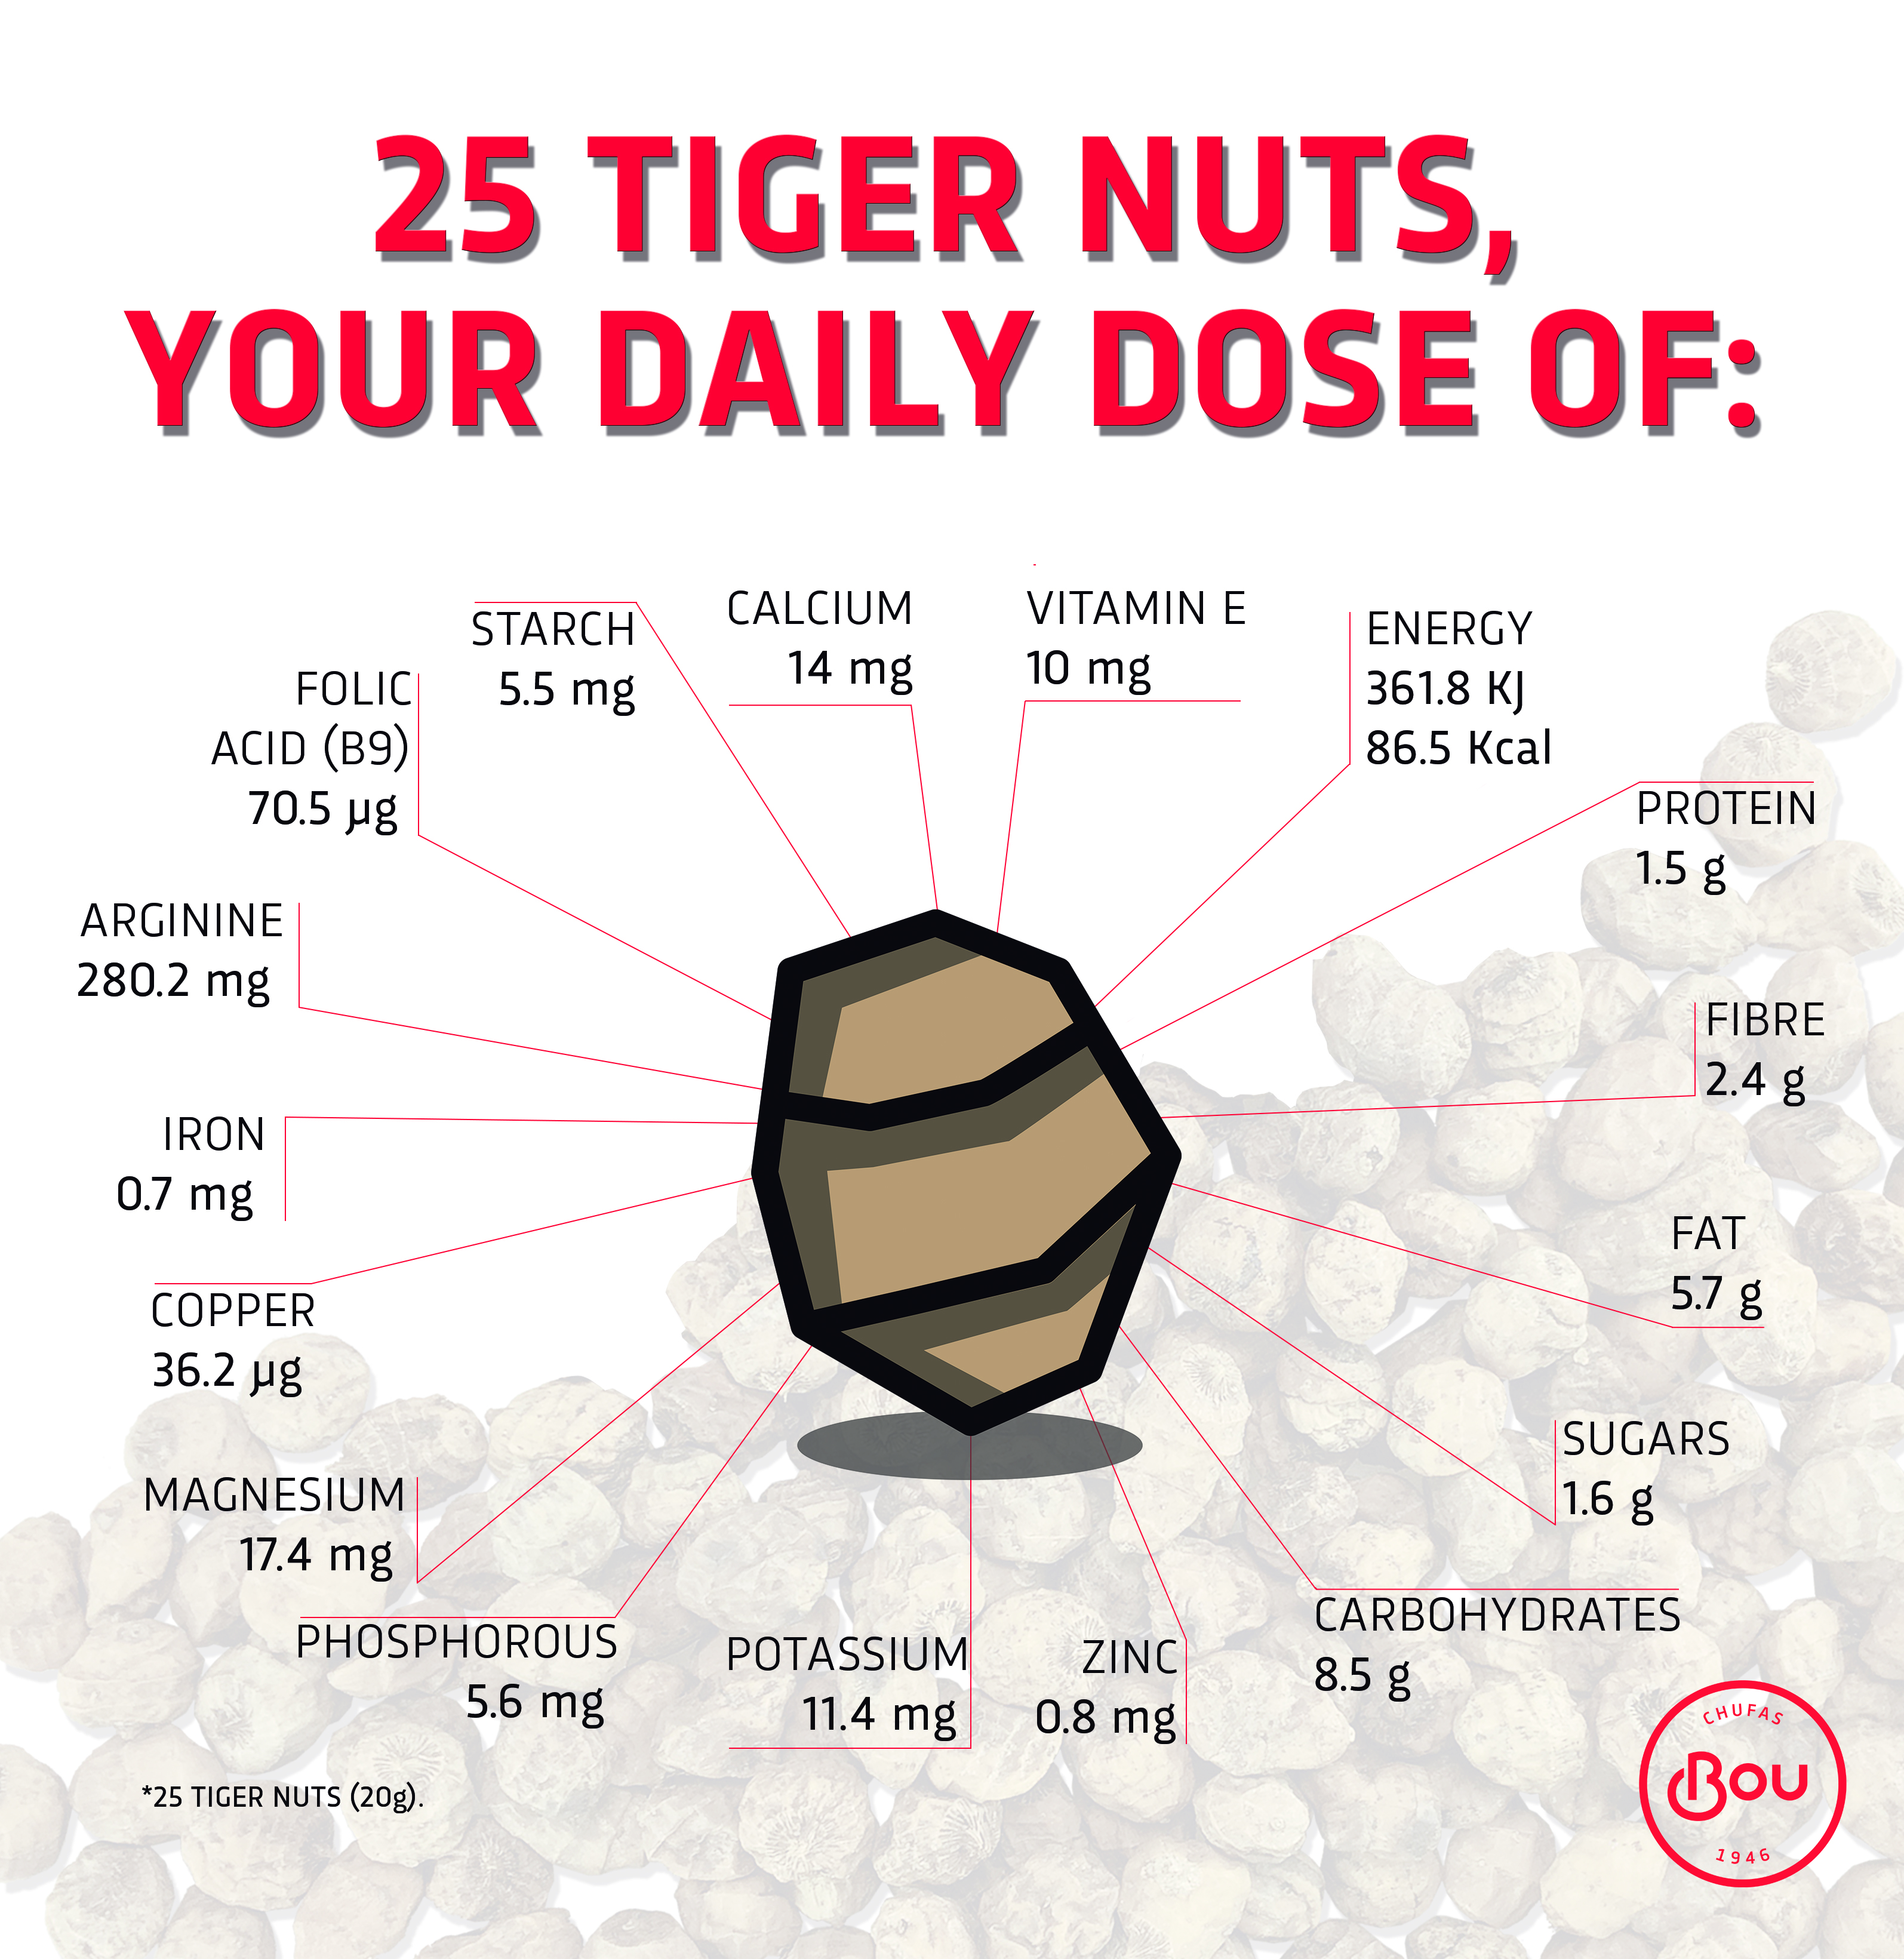 Organic Valencian Tiger Nut The New Superfood You Should Include In Your Daily Diet Chufas Bou